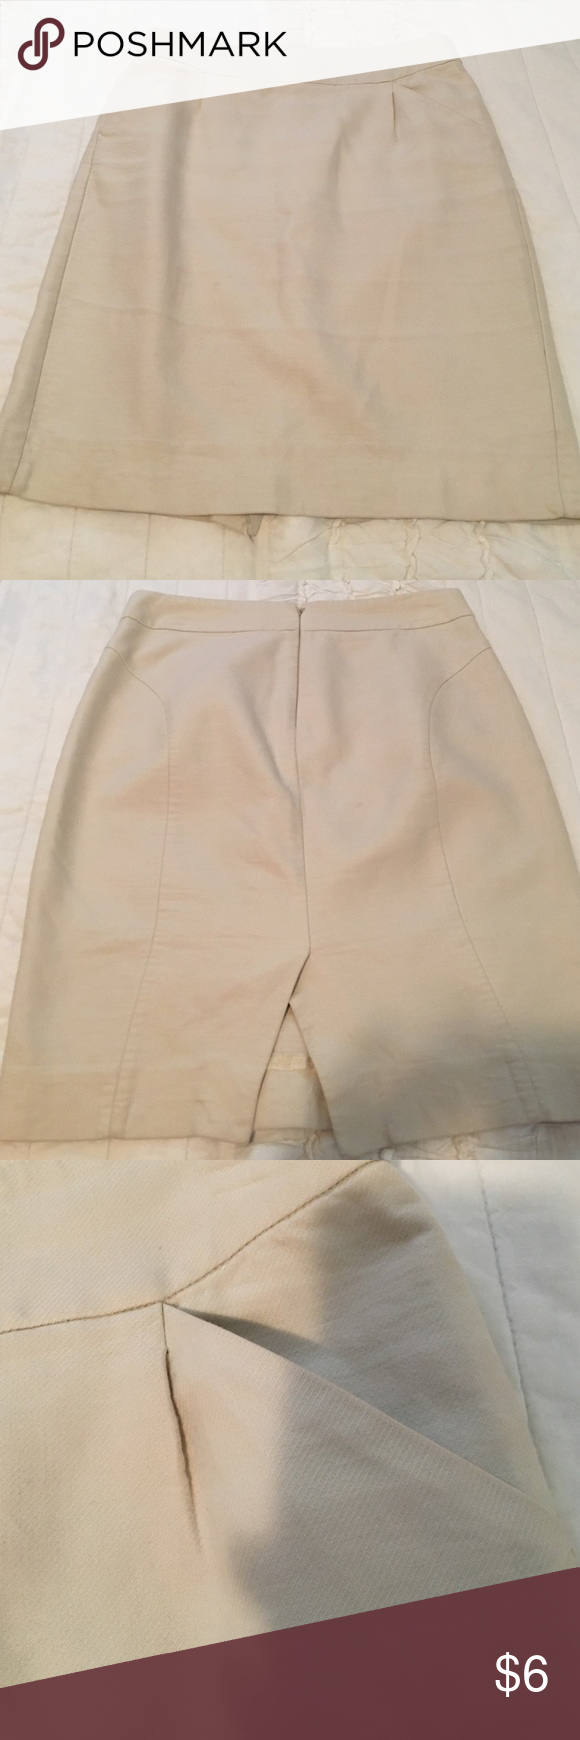 J crew cream skirt This is a j crew skirt. Size 2. Has pockets, has a slit in the back. Used a few times. In great condition! Has a little spot in the back barely noticeable. Does not fit me anymore. Any questions, please don't hesitate to ask!💕 J. Crew Skirts